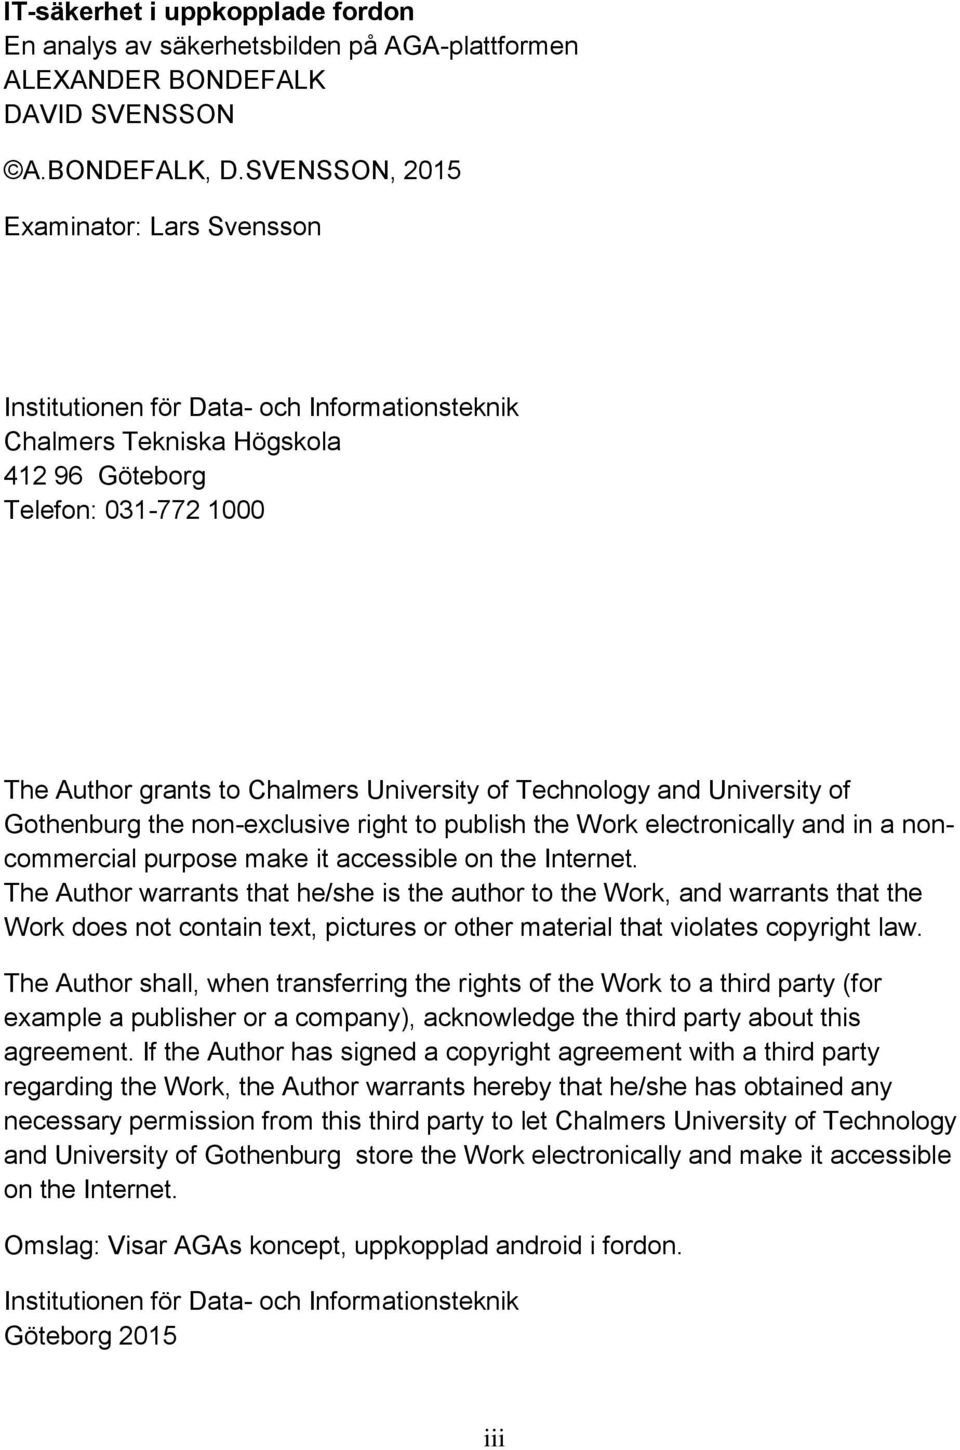 Technology and University of Gothenburg the non-exclusive right to publish the Work electronically and in a noncommercial purpose make it accessible on the Internet.